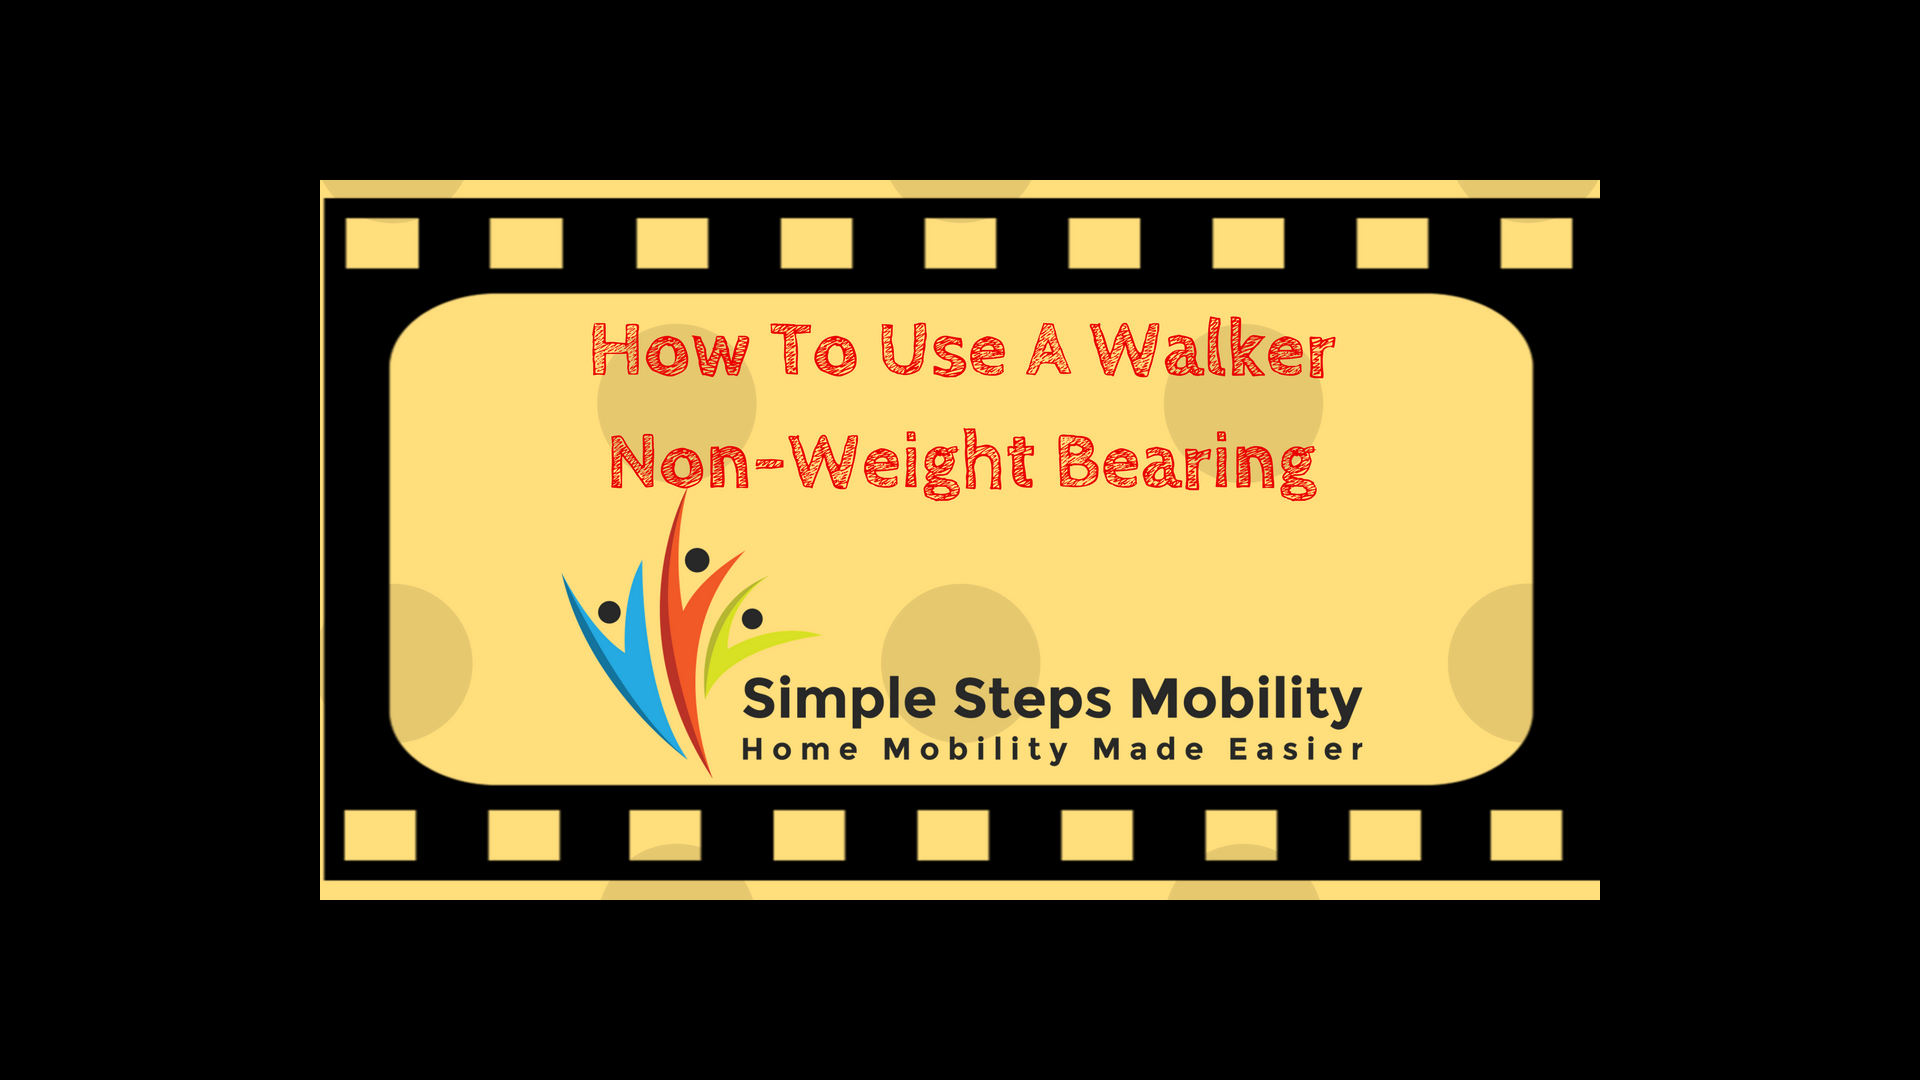 How To Use A Walker Non-Weight Bearing